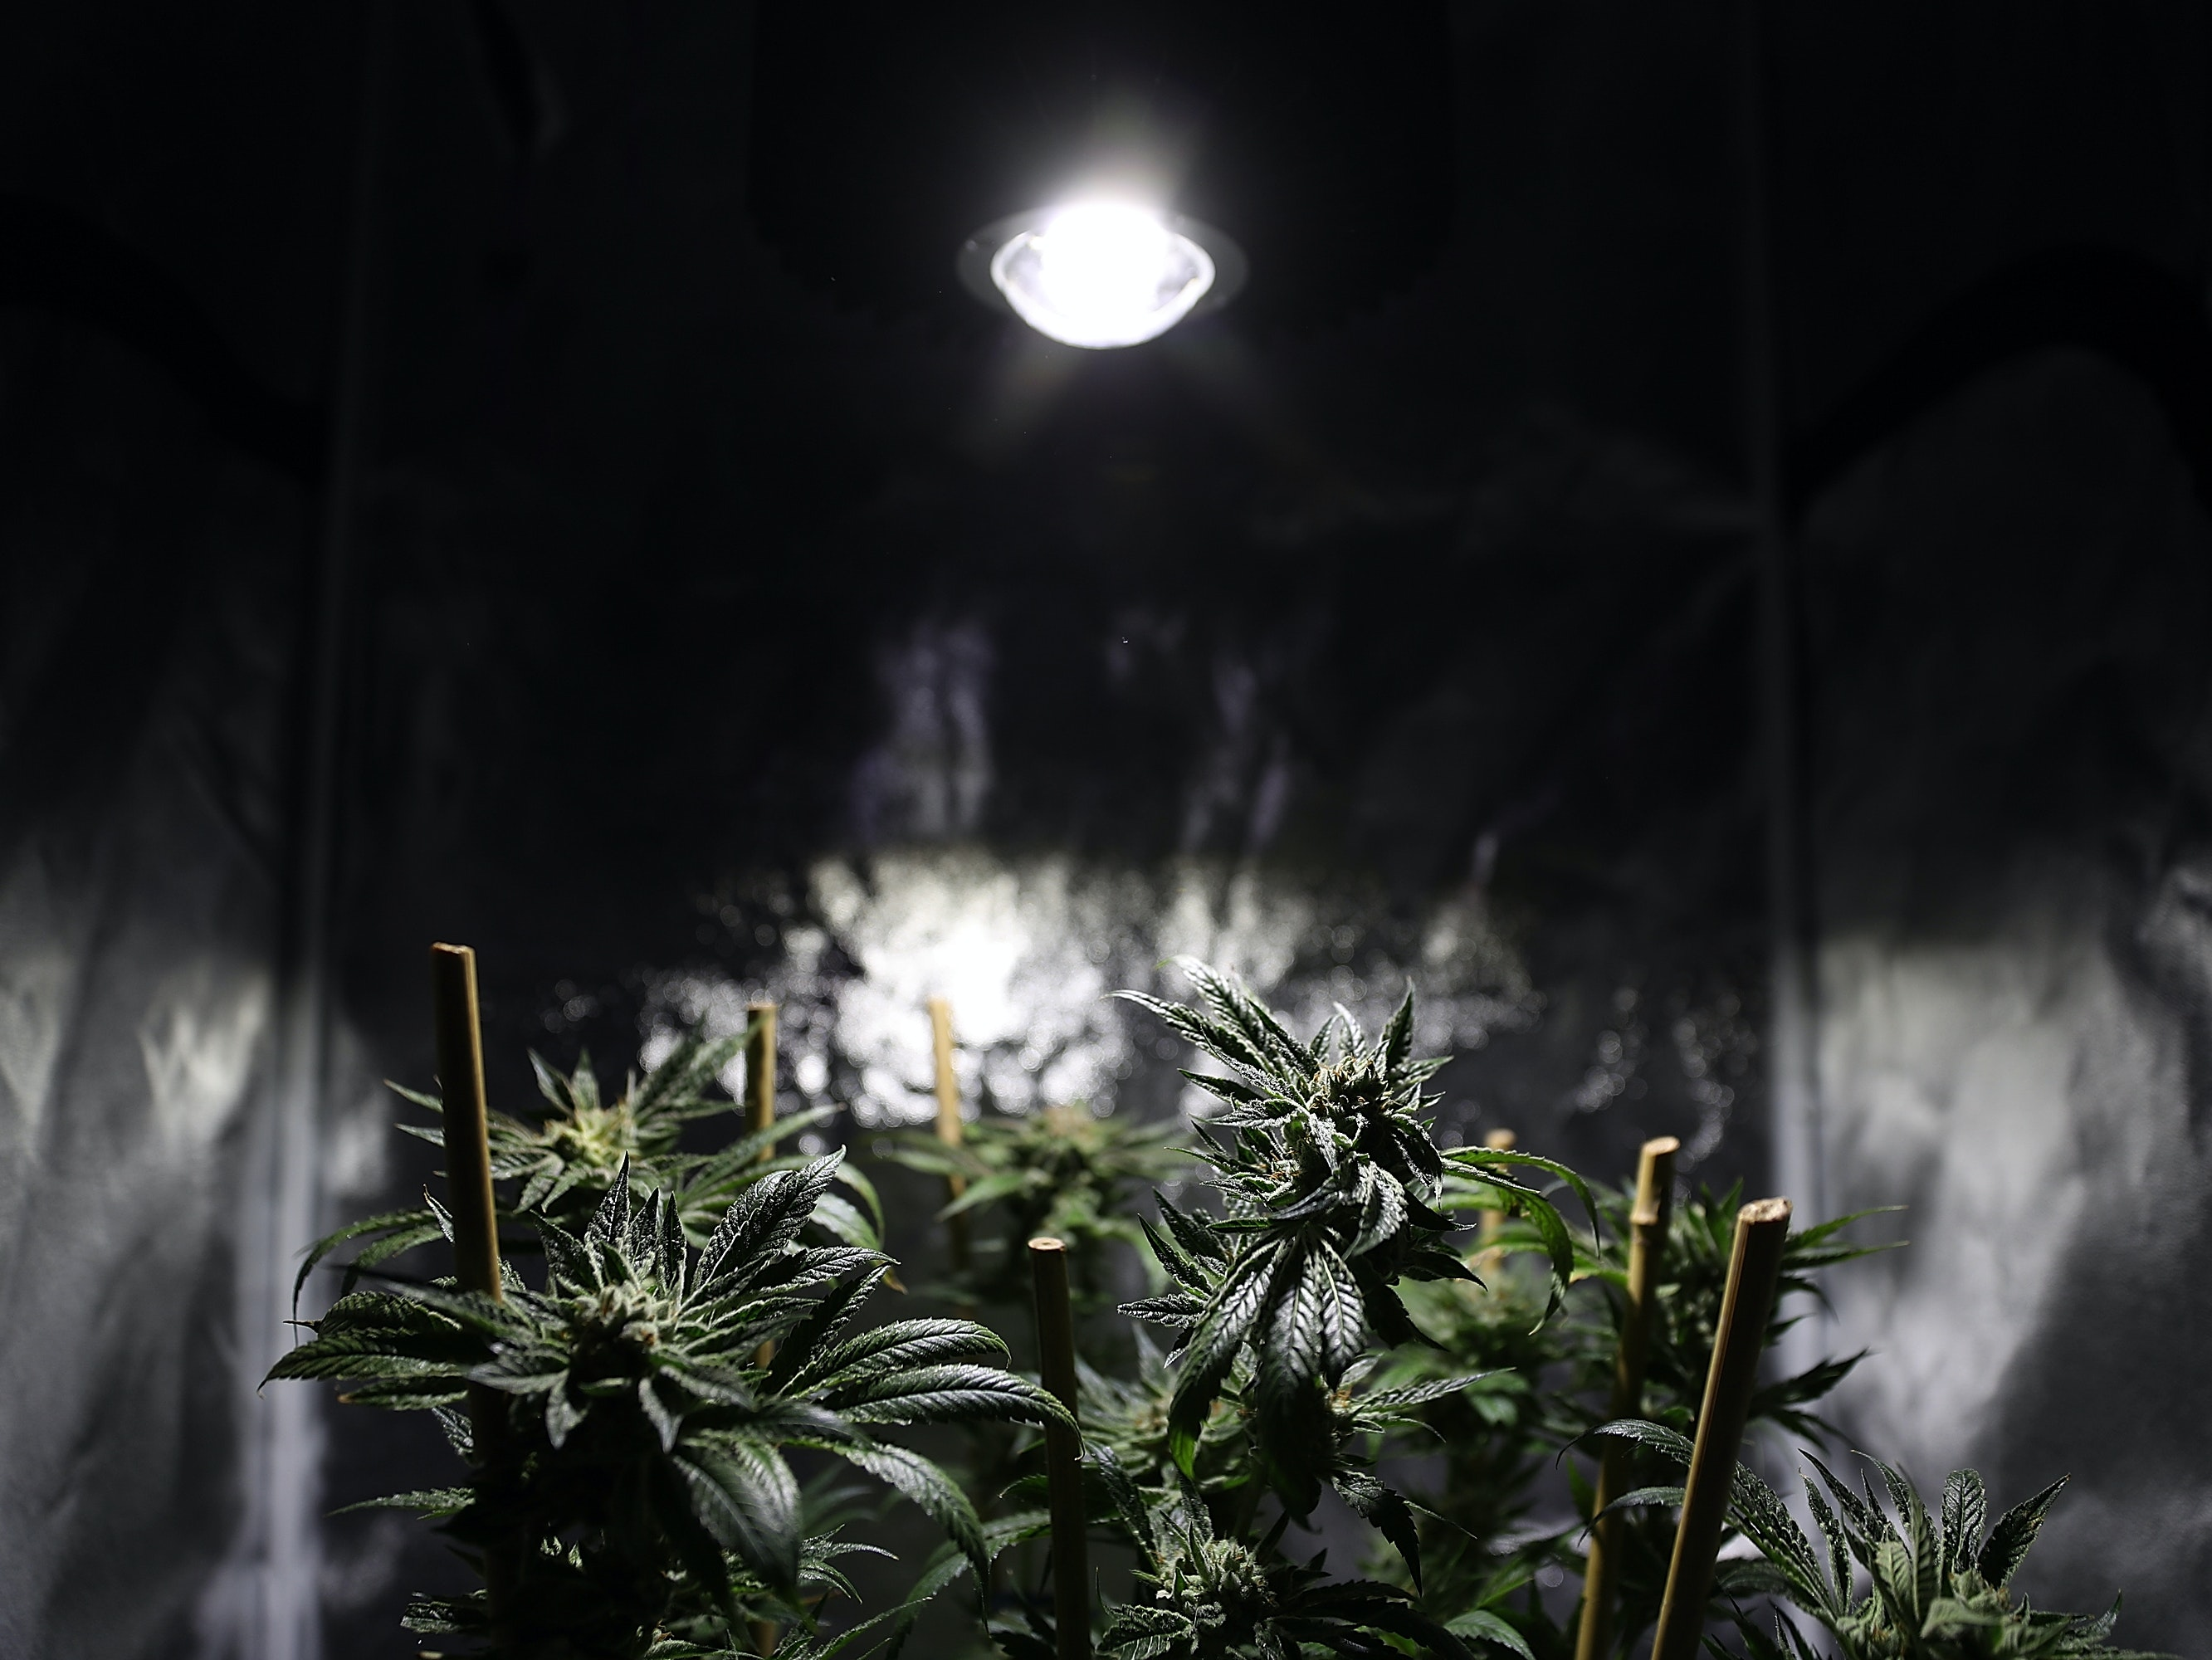 The DEA's decision not to overturn the research laws on marijuana, a Schedule 1 drug, means scientists will continue to have to sort through years of paperwork before beginning their research.